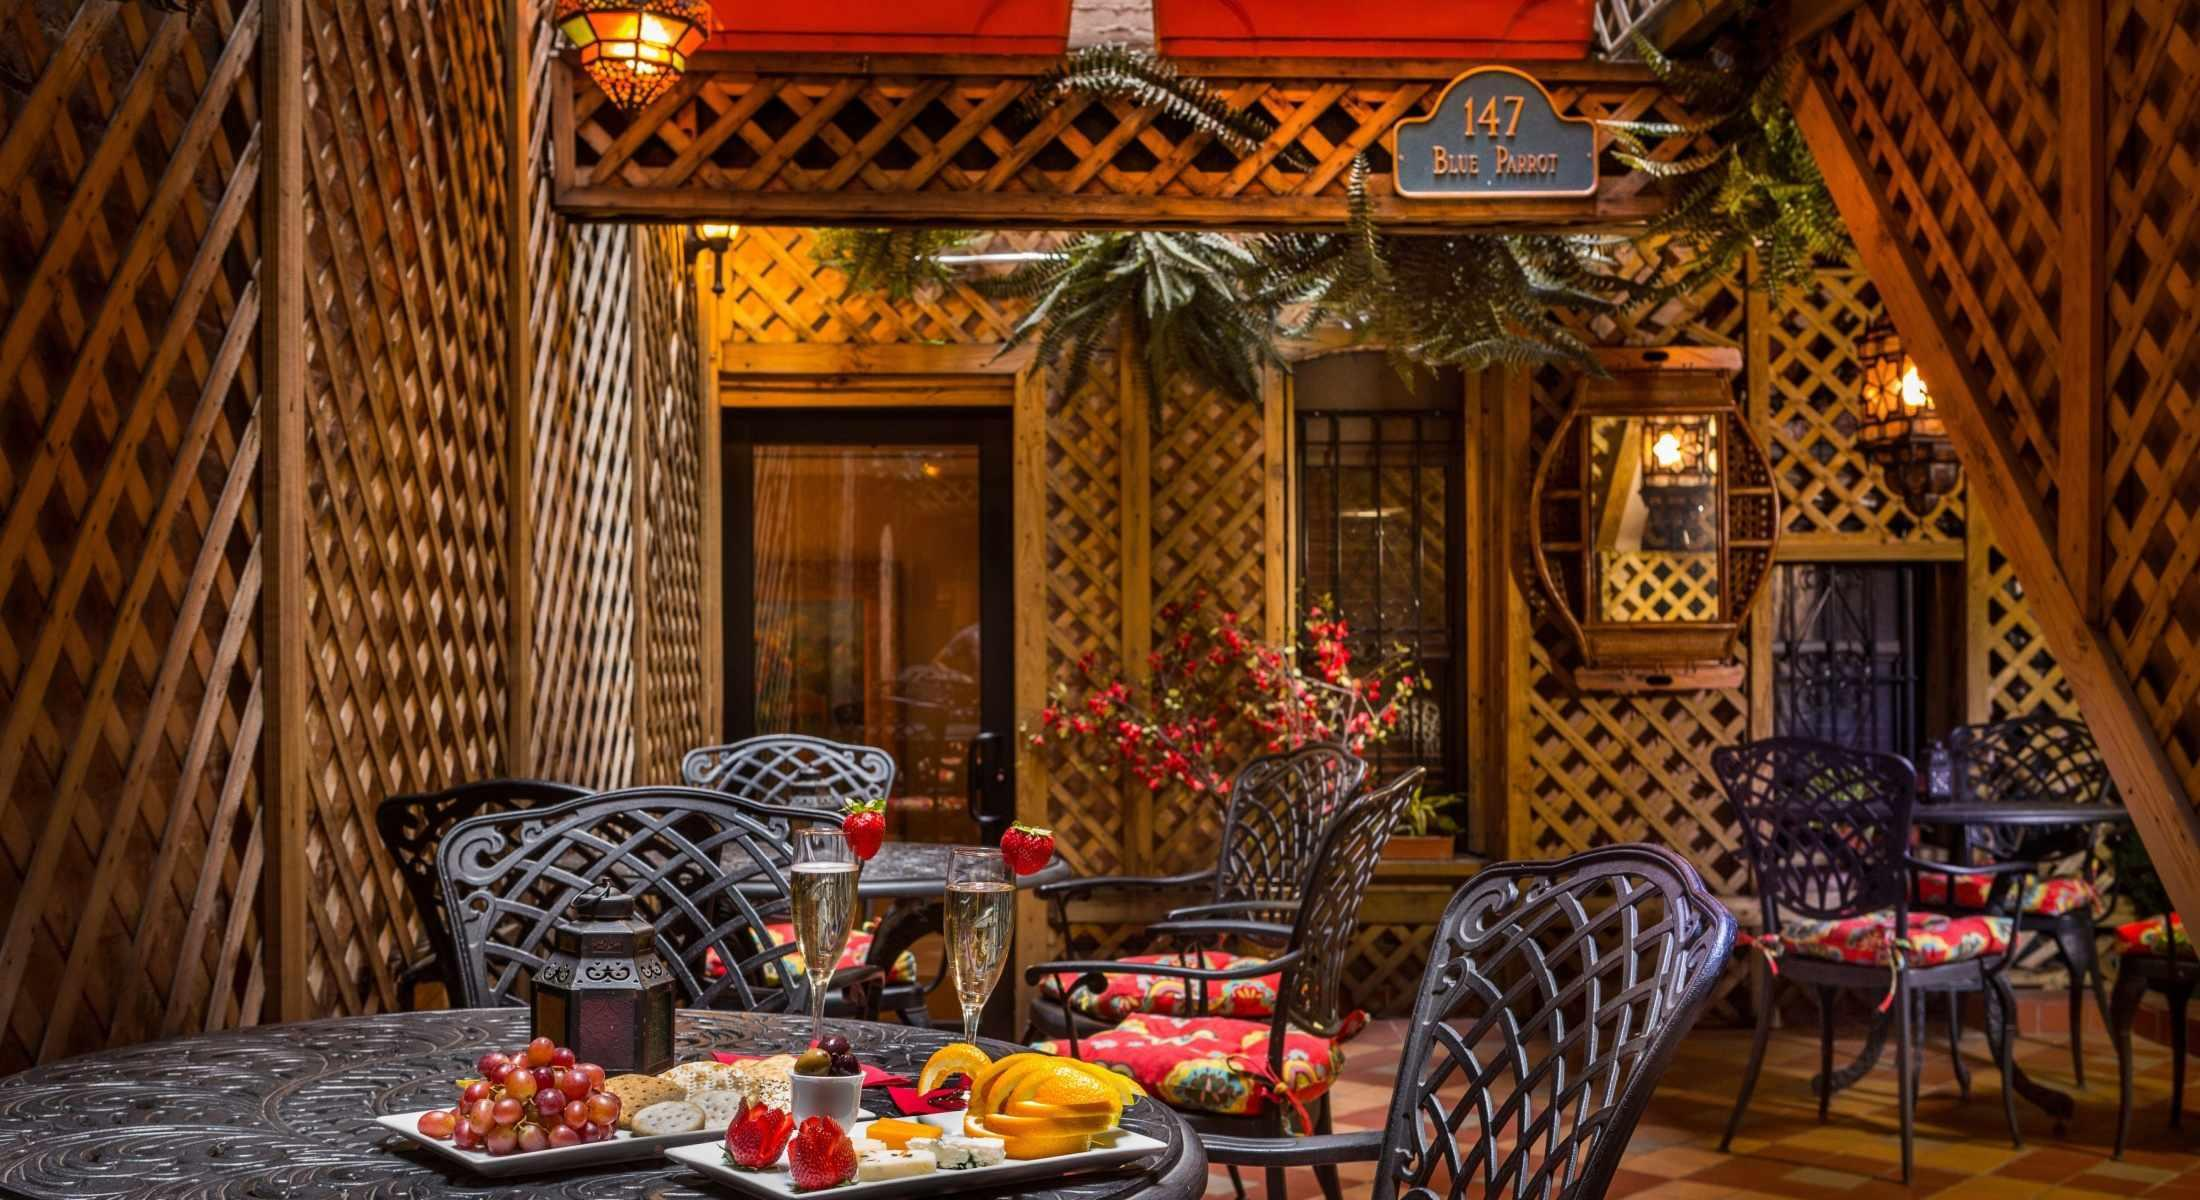 On warmer days, guests are invited to enjoy our complimentary Wine & Cheese Reception in our Blue Parrot Courtyard!